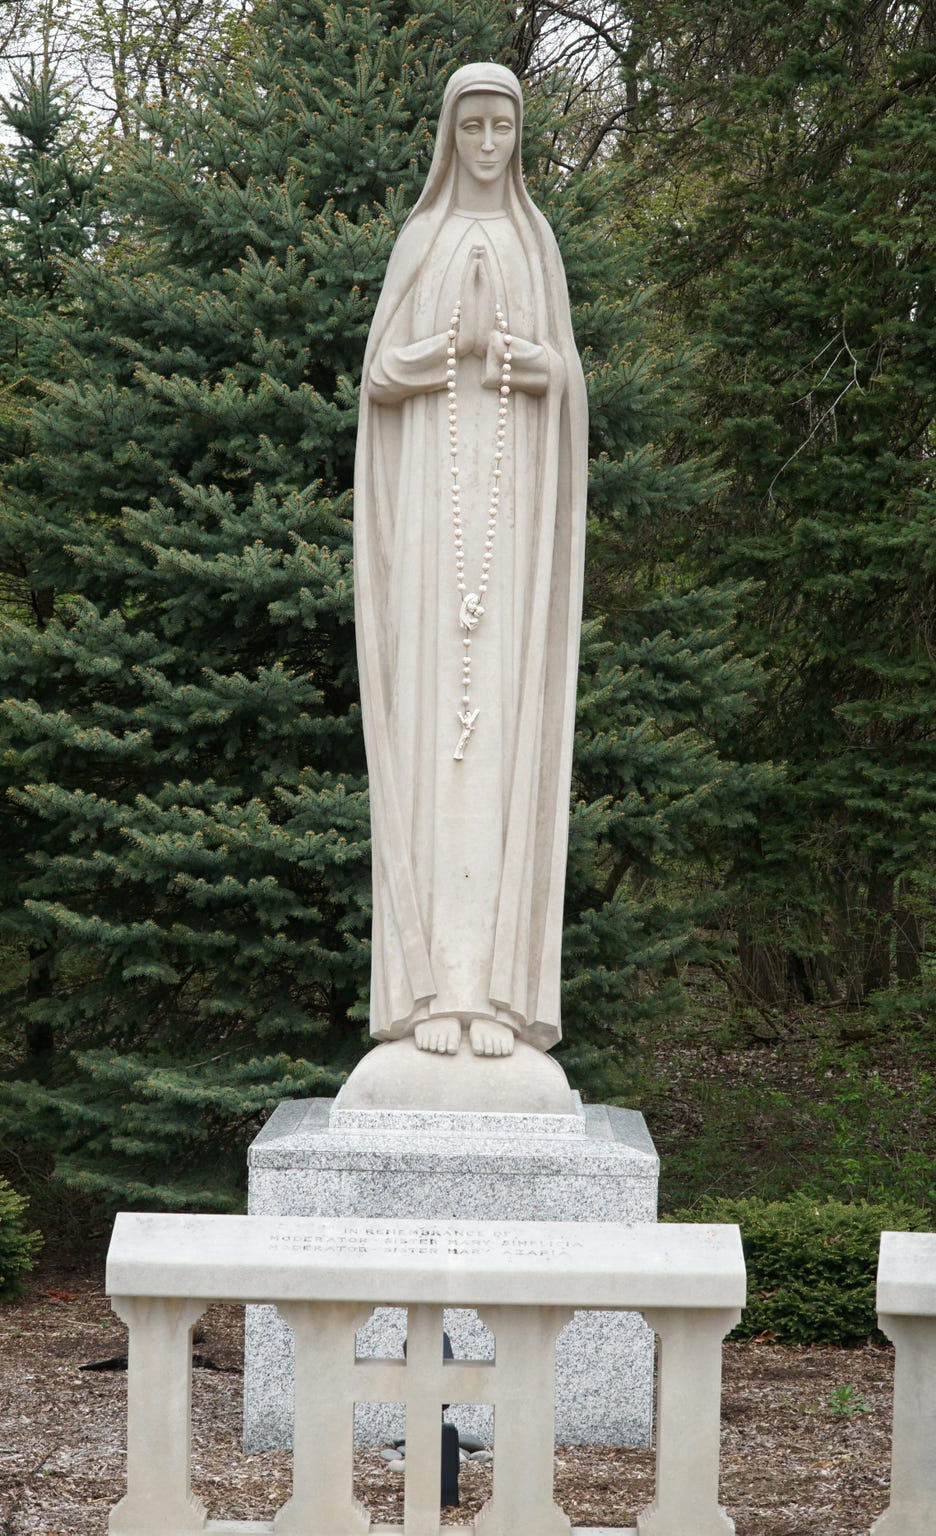 Statuary of Mary at the Felician Sisters' campus in Livonia.